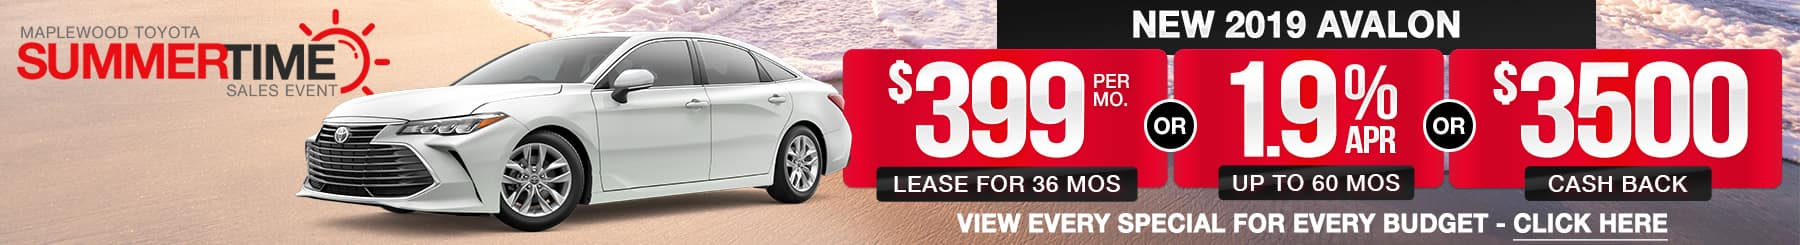 Toyota Avalon Lease or Finance Specials